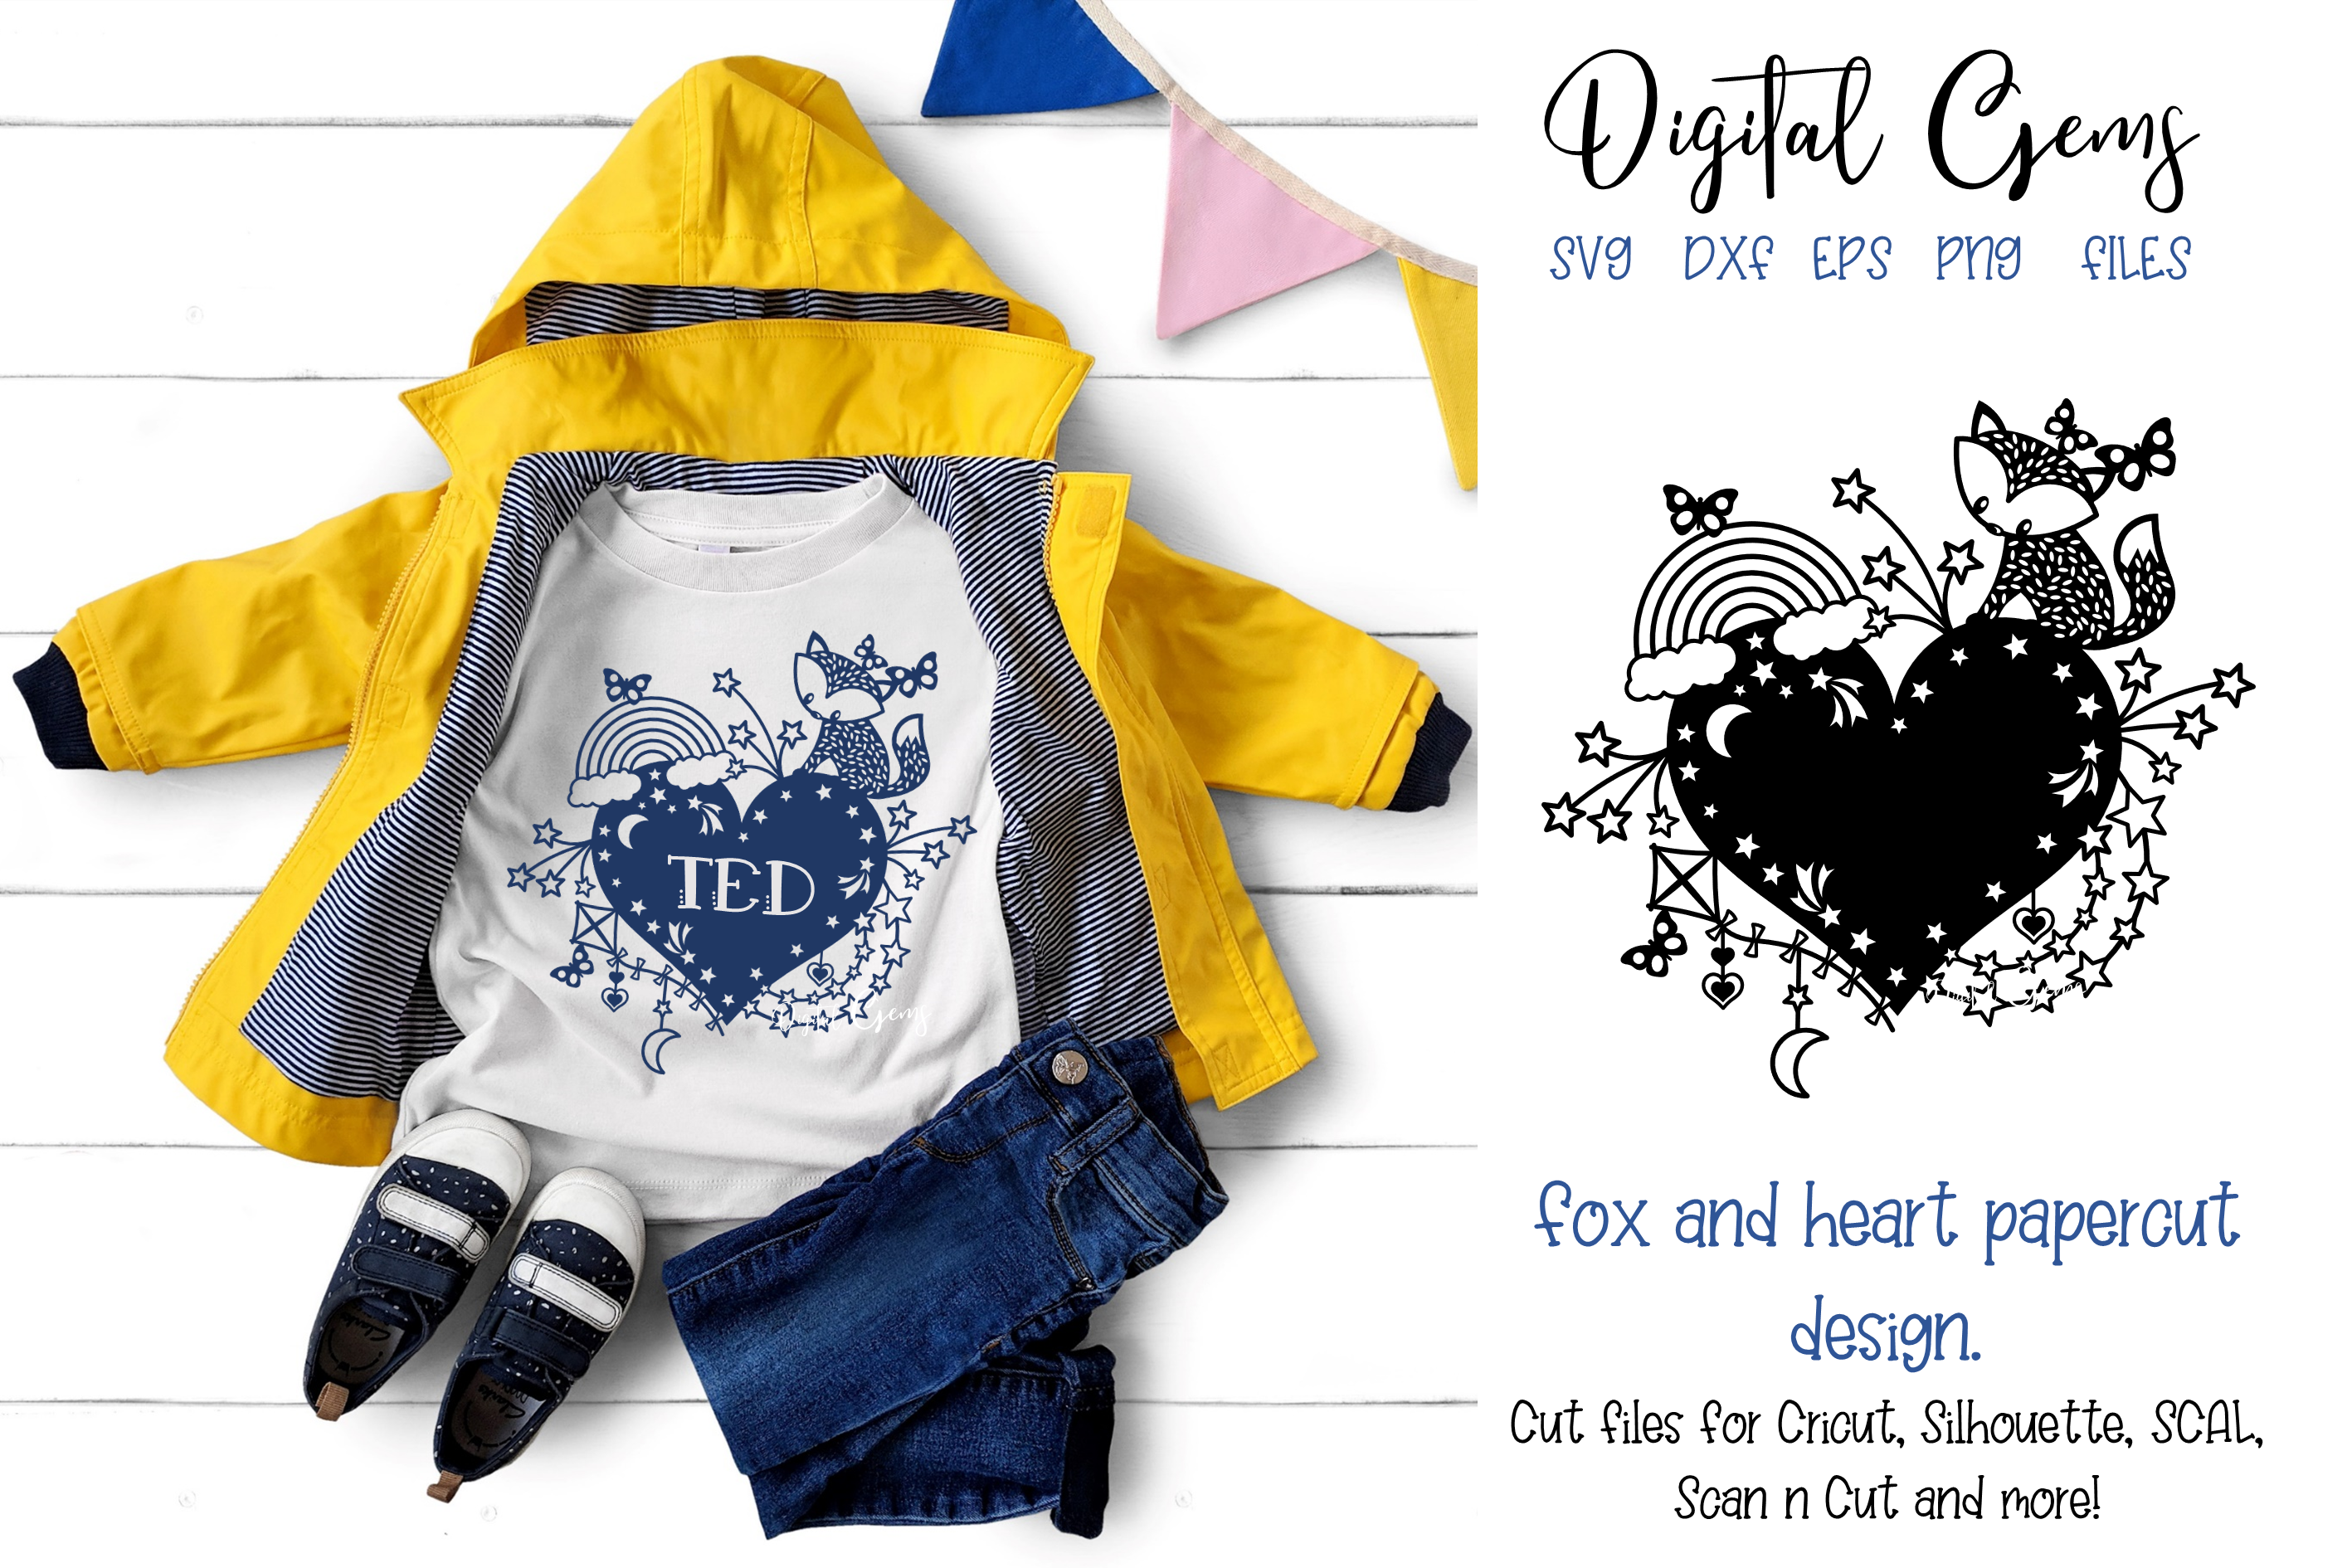 Fox and heart paper cut design SVG / DXF / EPS / PNG files example image 1